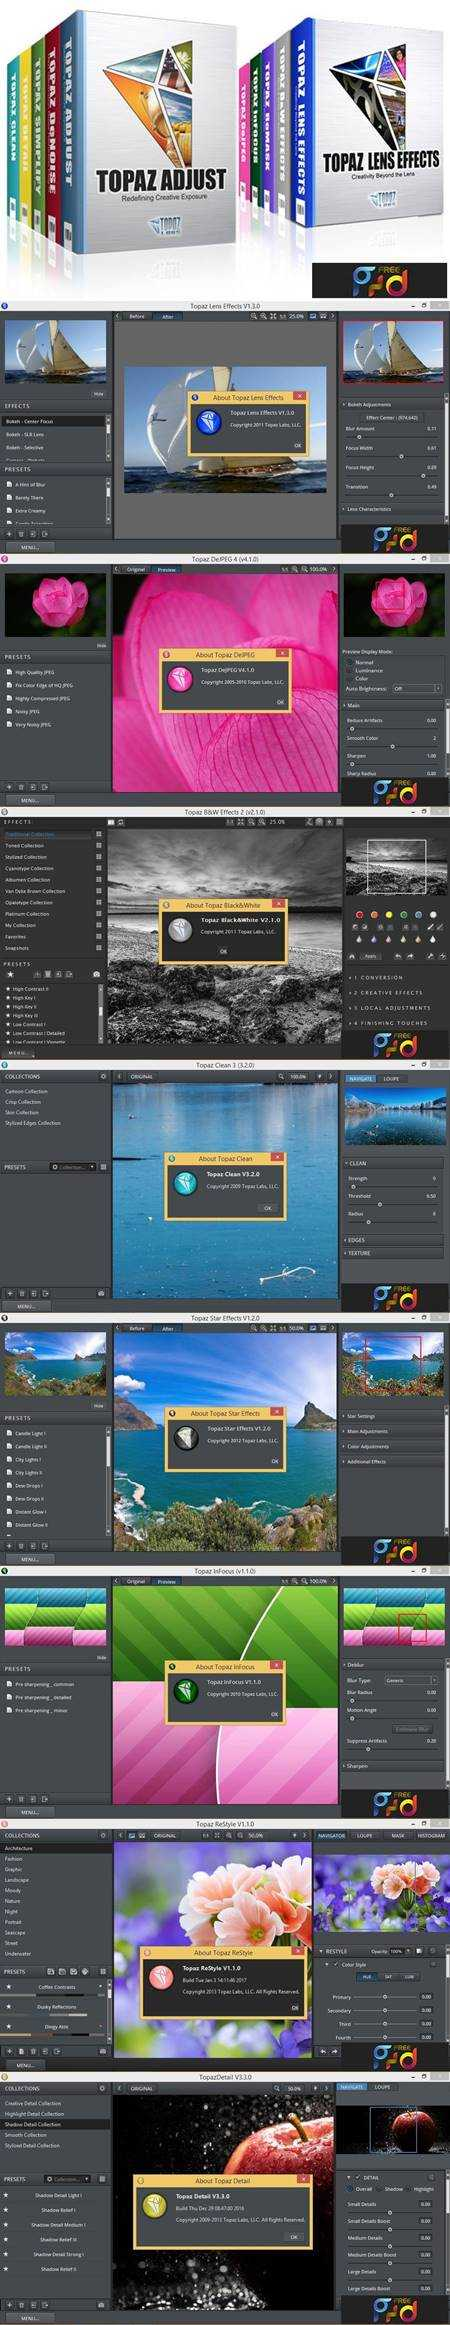 FreePsdVn.com_PLUGIN_Topaz_Labs_Photoshop_Plugins_Bundle_20170119